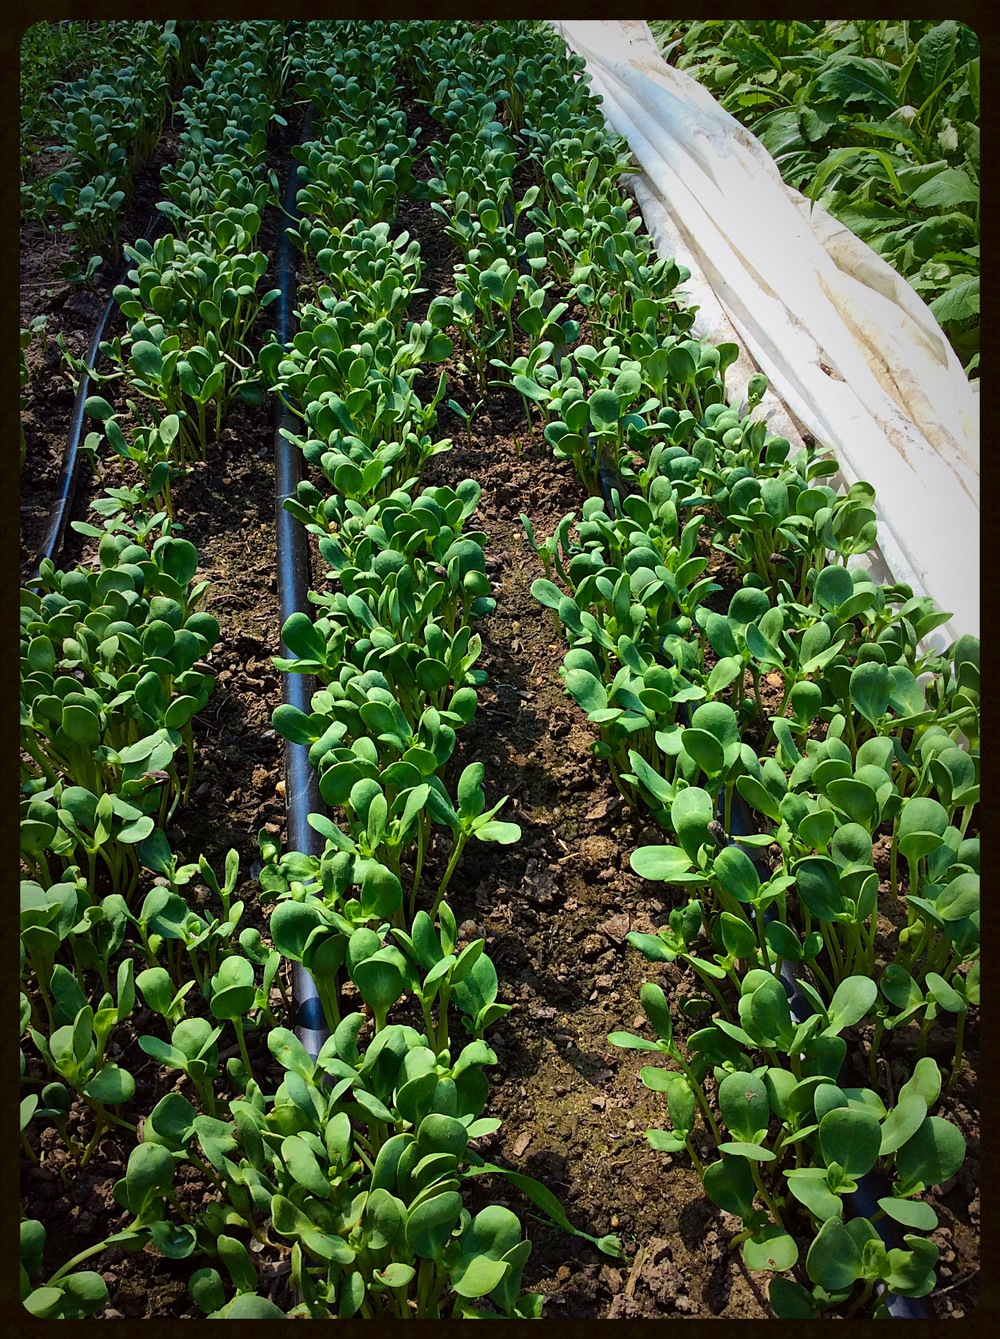 Field-grown sunflower shoots